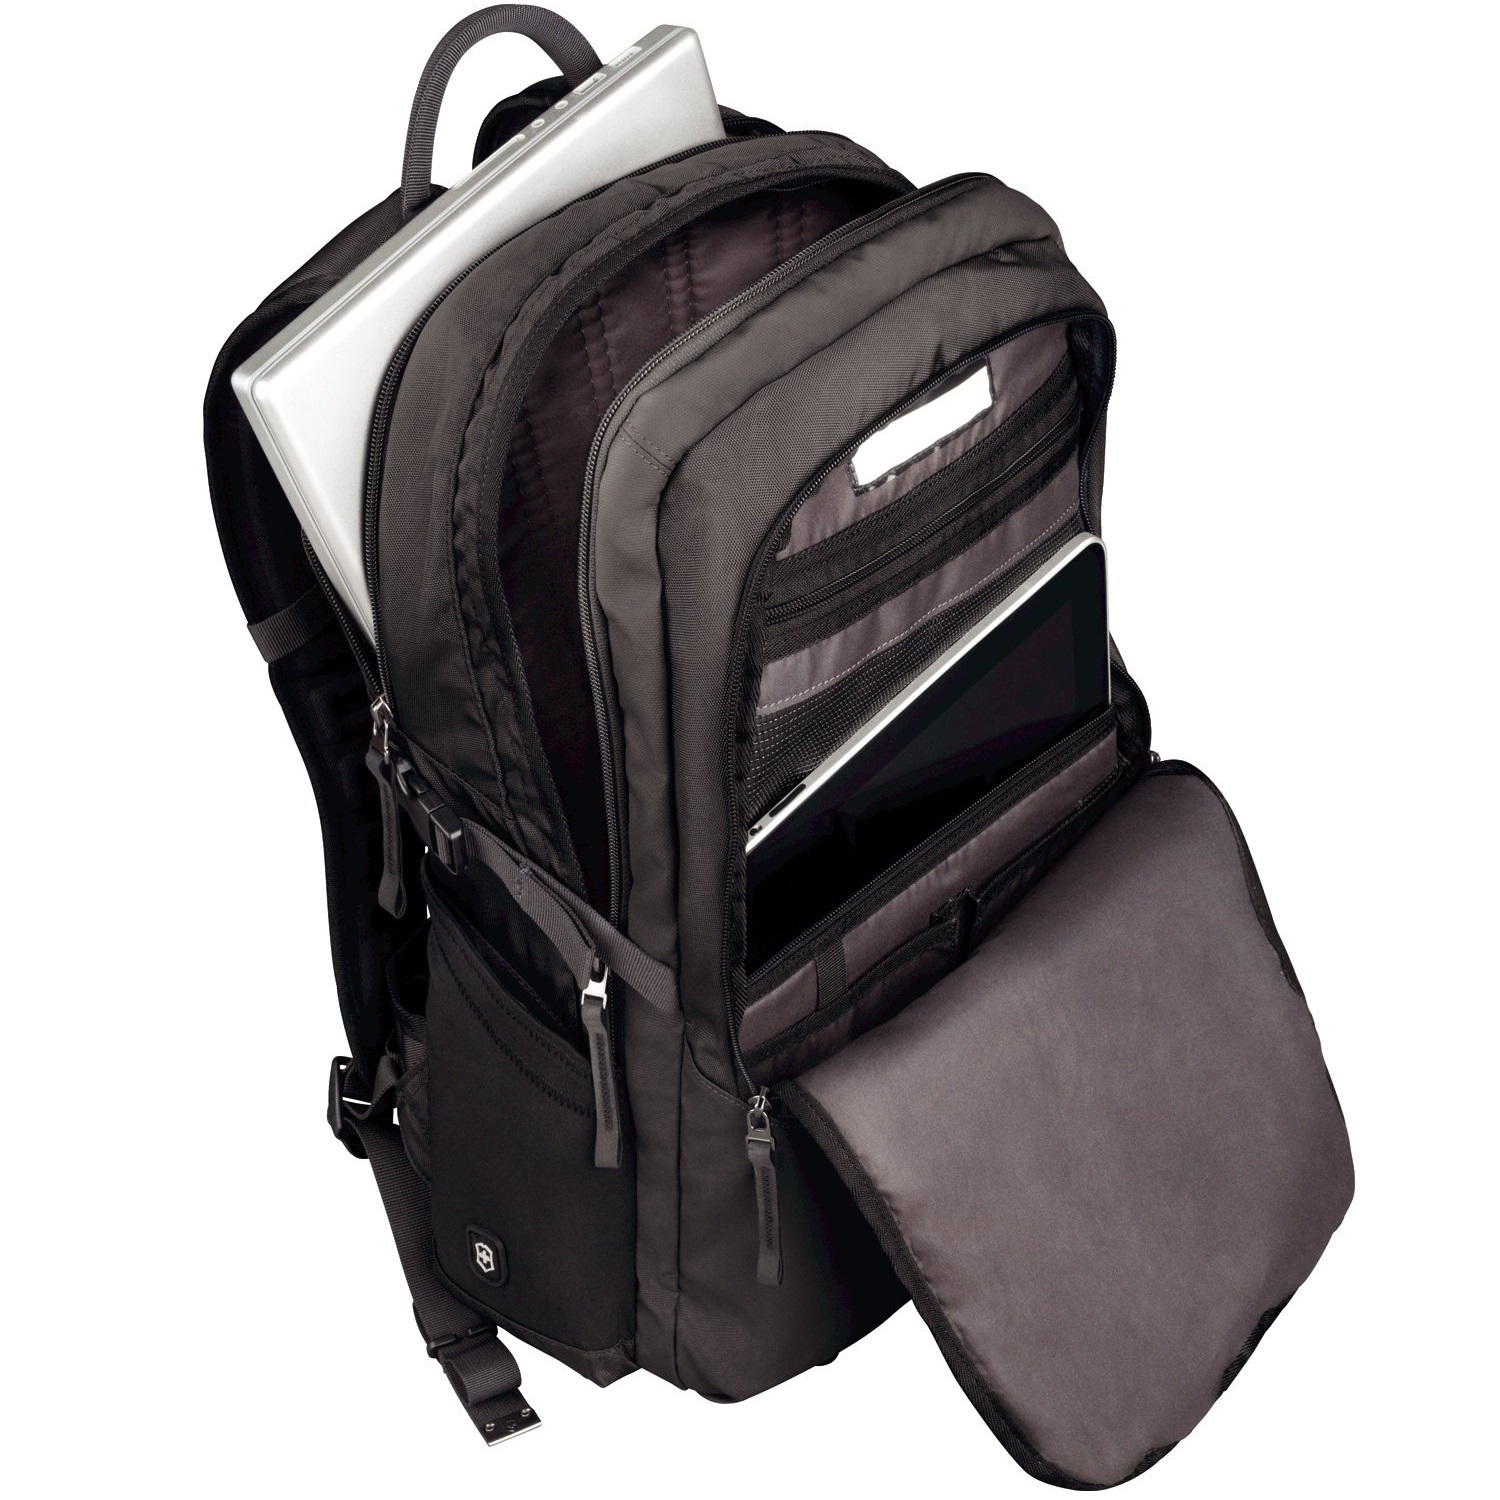 The Victorinox Backpack offers protective inside walls for protection of electronics.